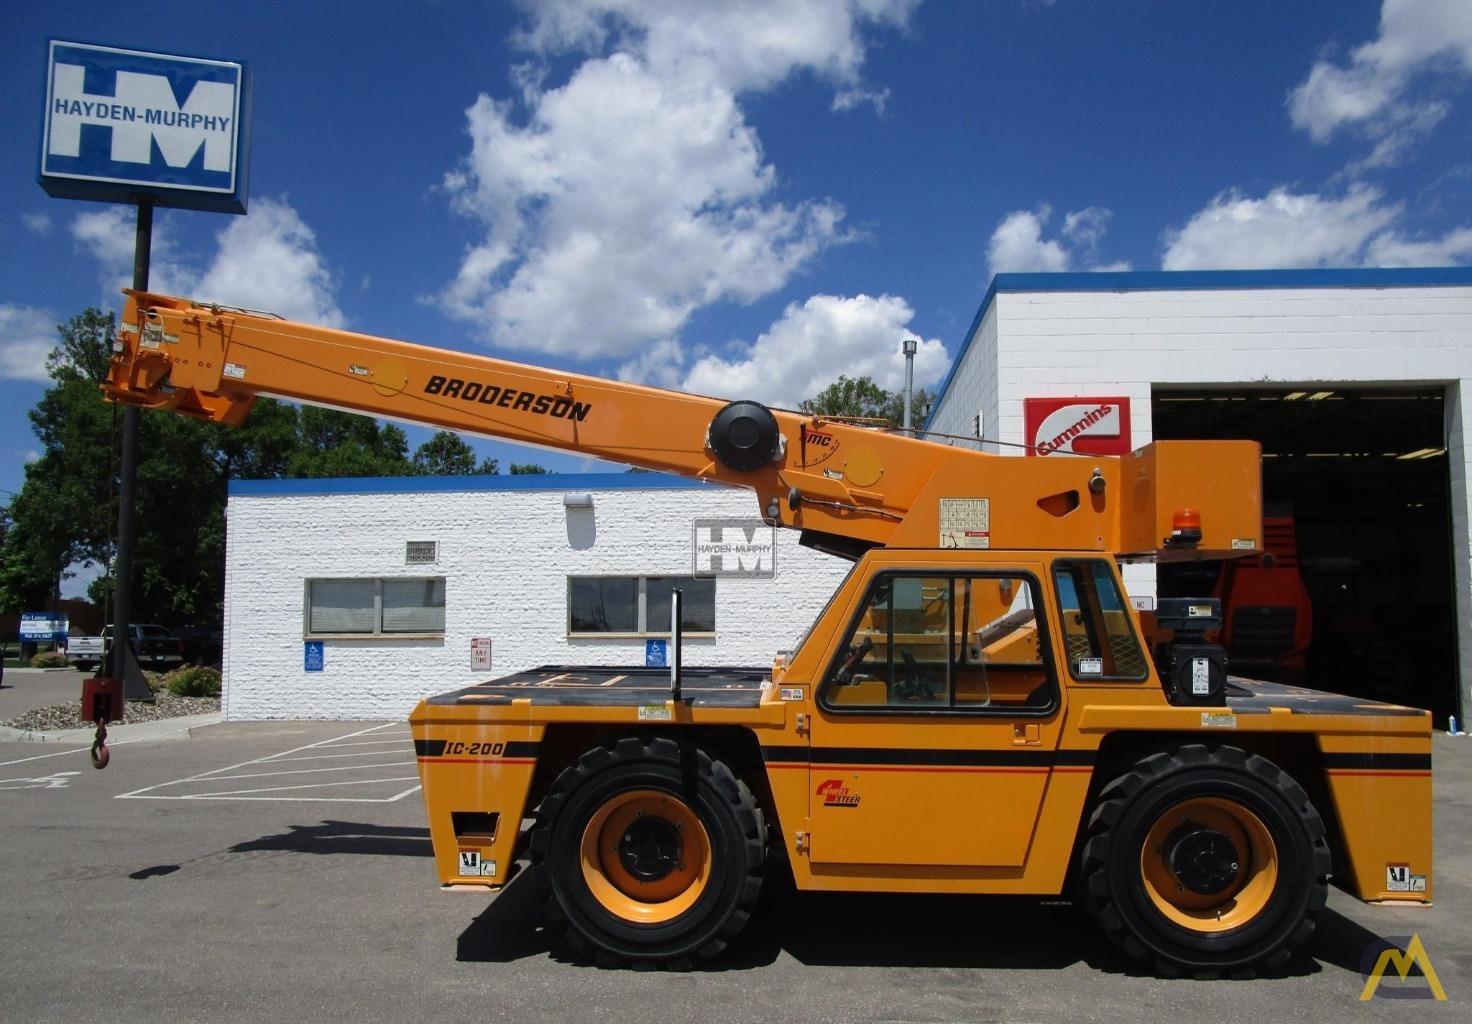 Broderson IC-200-2H 15-ton Industrial Carry Deck Crane 0